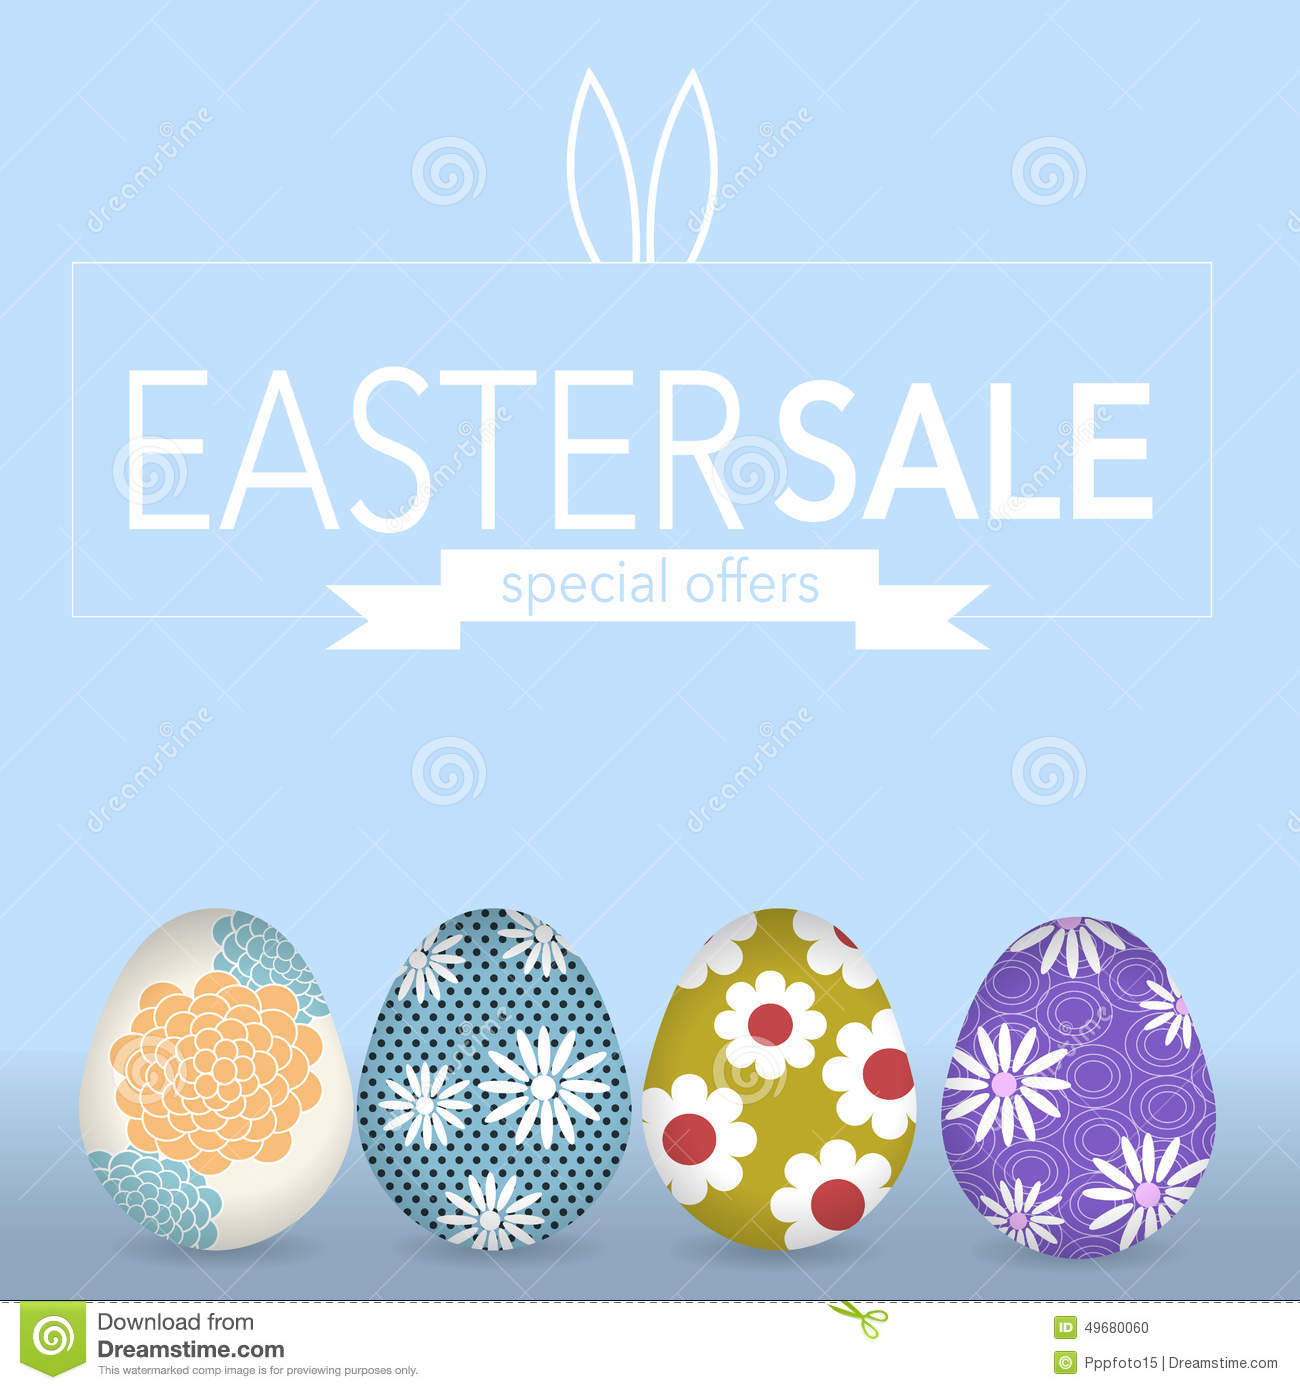 Easter Sale: The Easter Eegs Banner For Easter Sales With Special